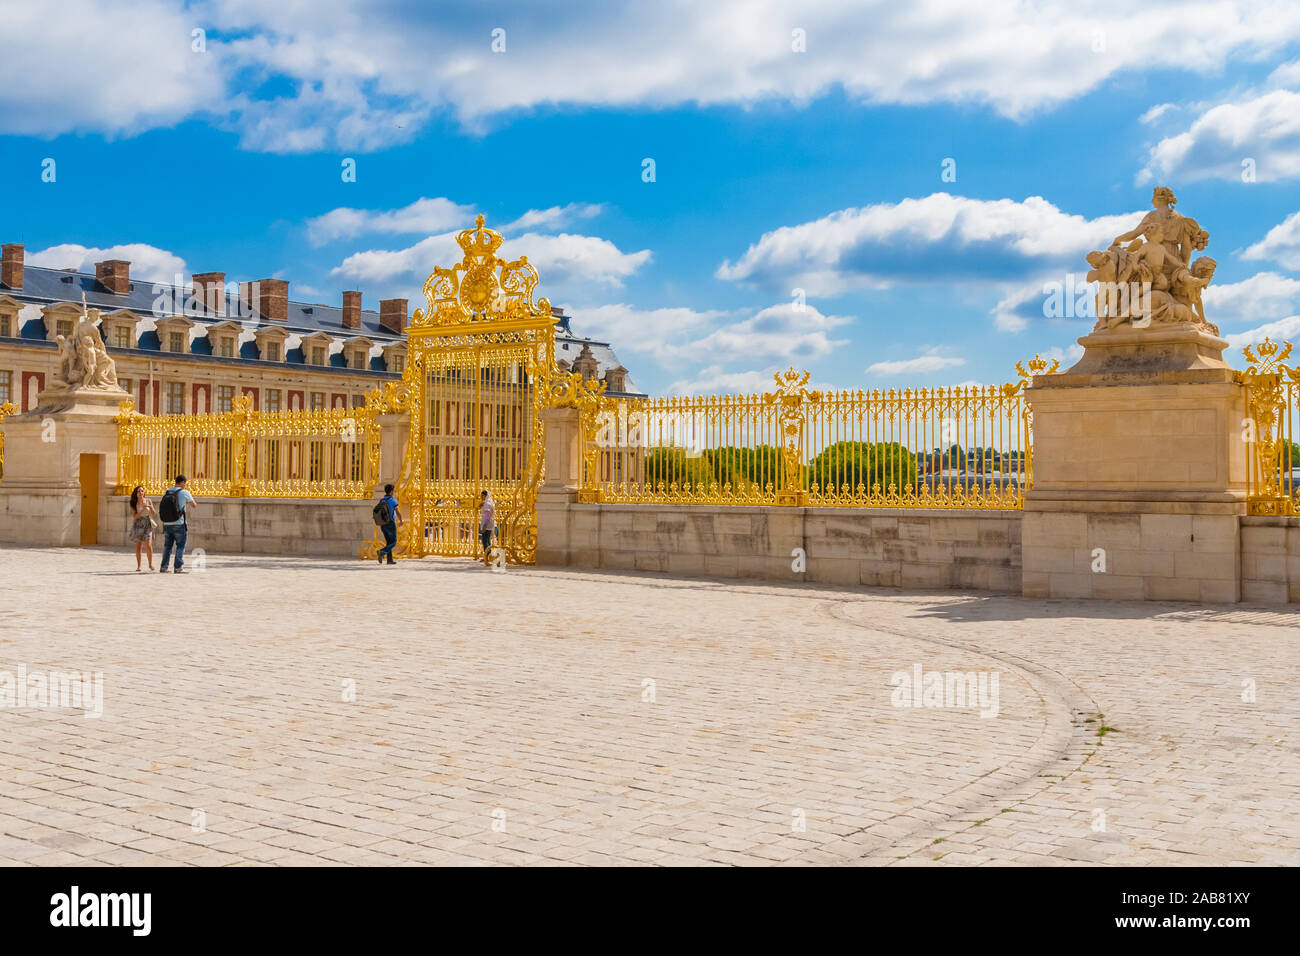 Great panoramic view of the shiny golden Royal Gate, an elaborate gold leaf gate, seen from inside the Cour Royale of the famous Palace of Versailles... Stock Photo